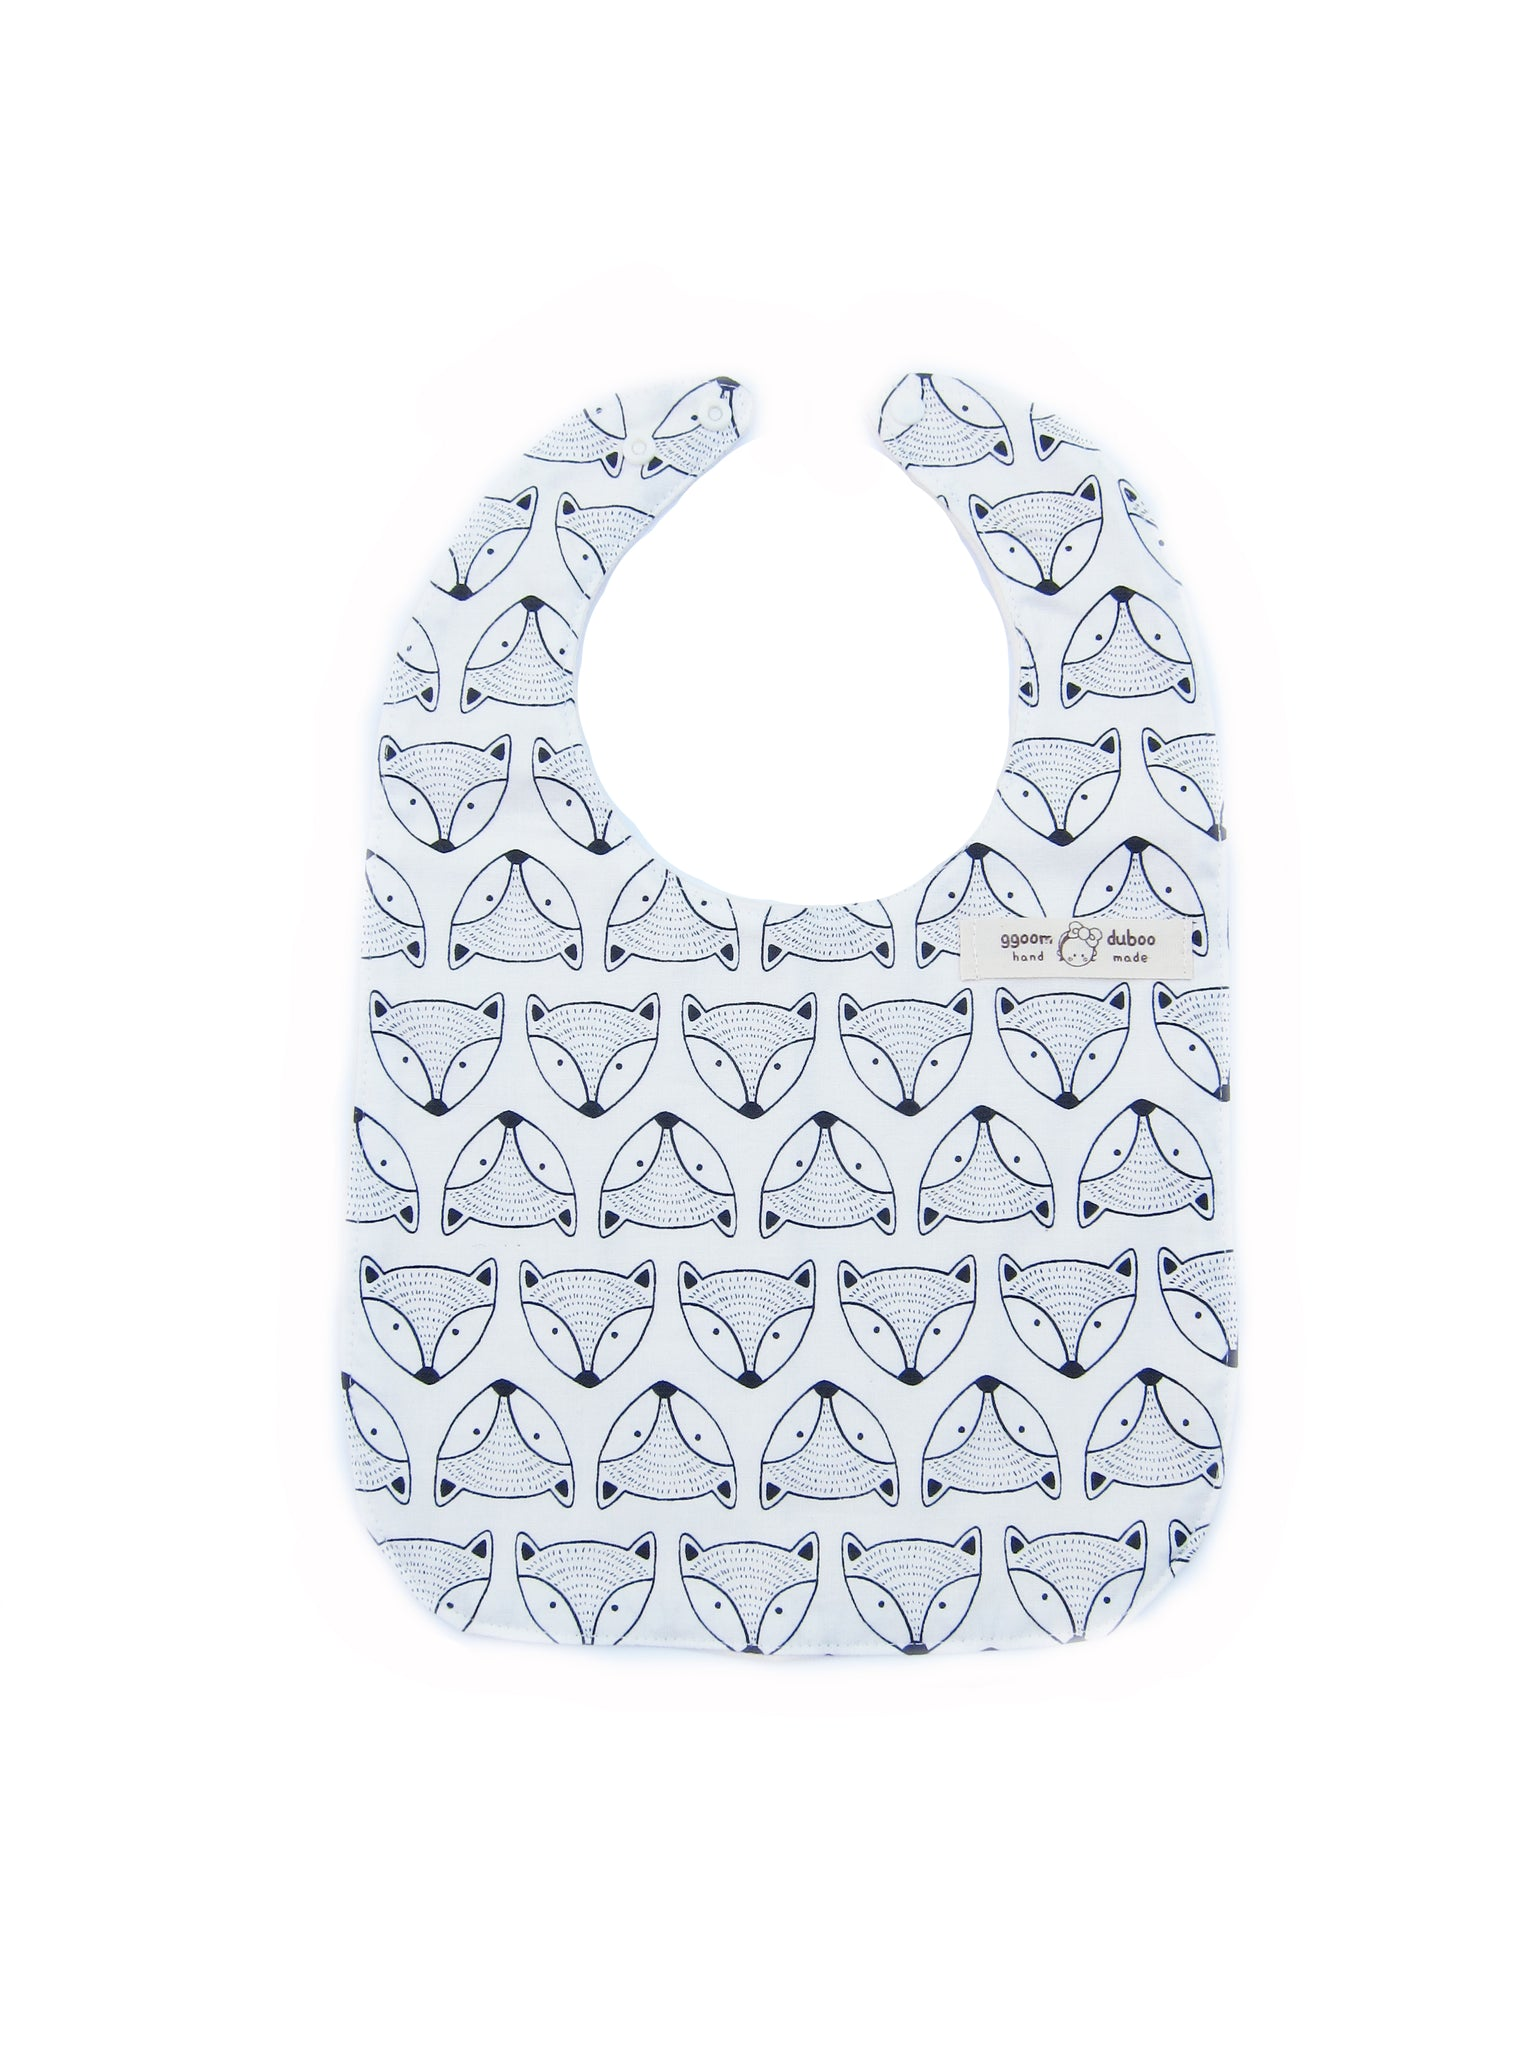 Black & White Modern Fox Bib for Baby and Toddler Boys and Girls - Bonjour Bear